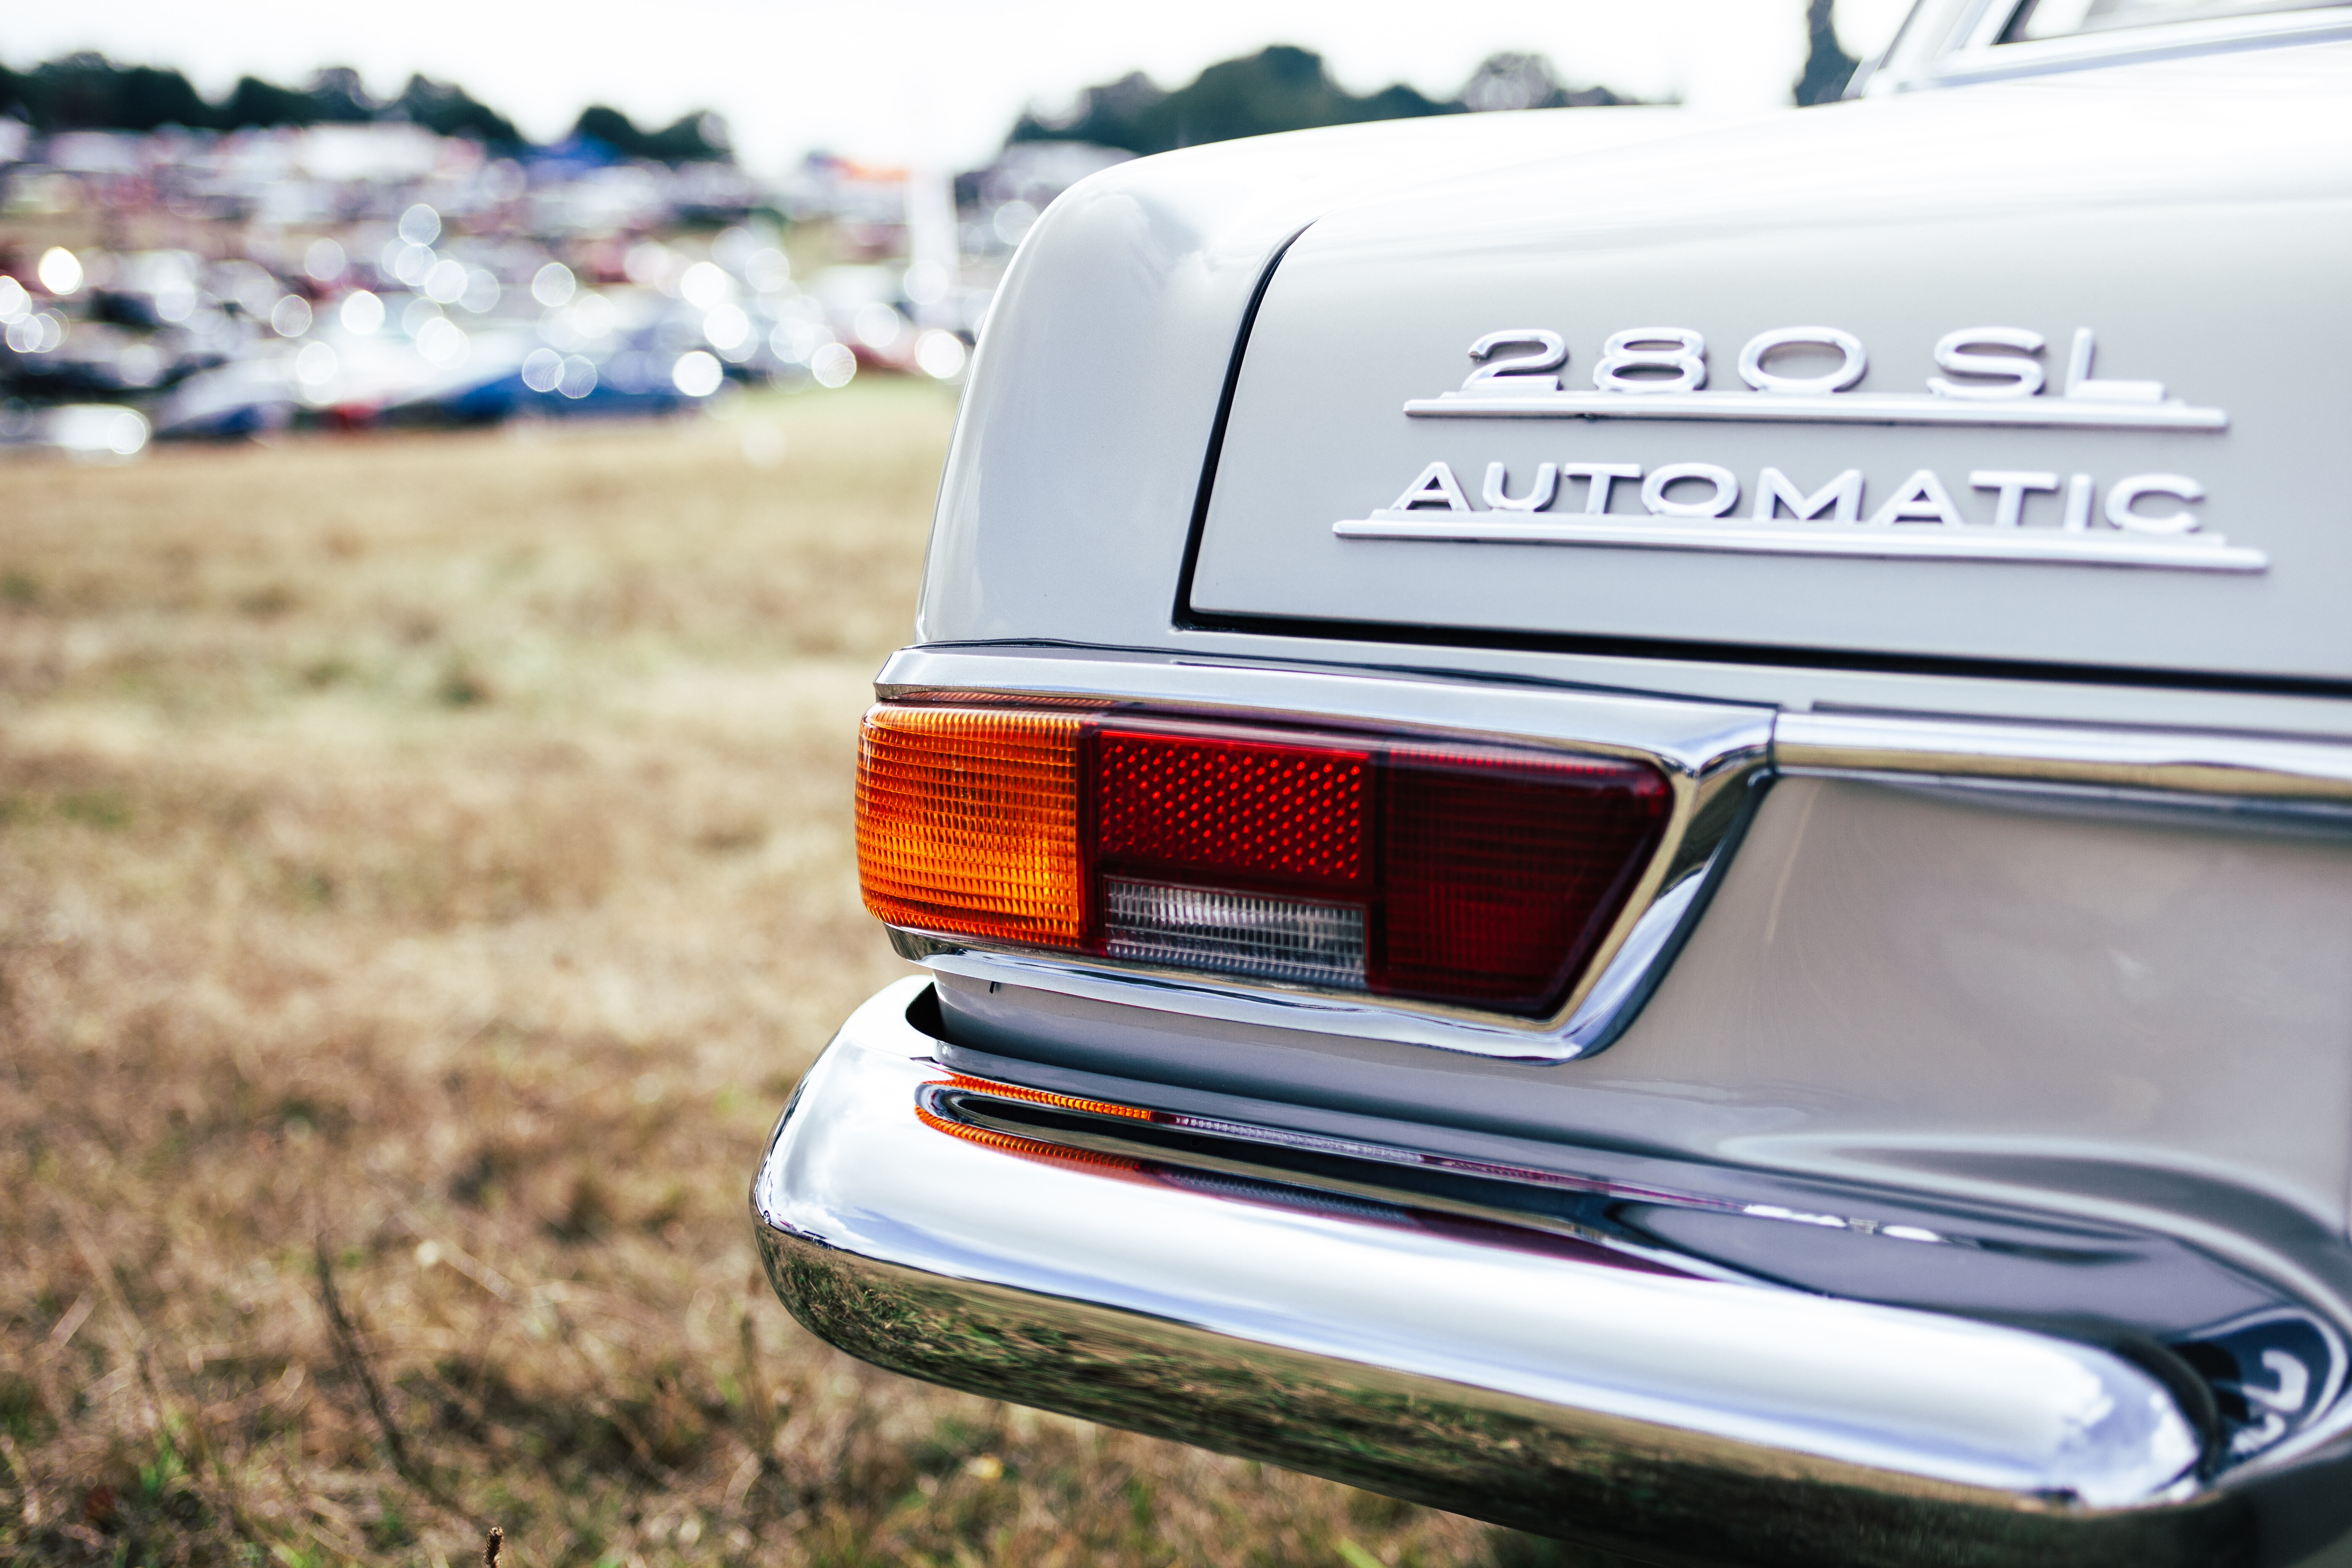 Macro of classic car with tail lights with 280 SL Automatic decals on trunk